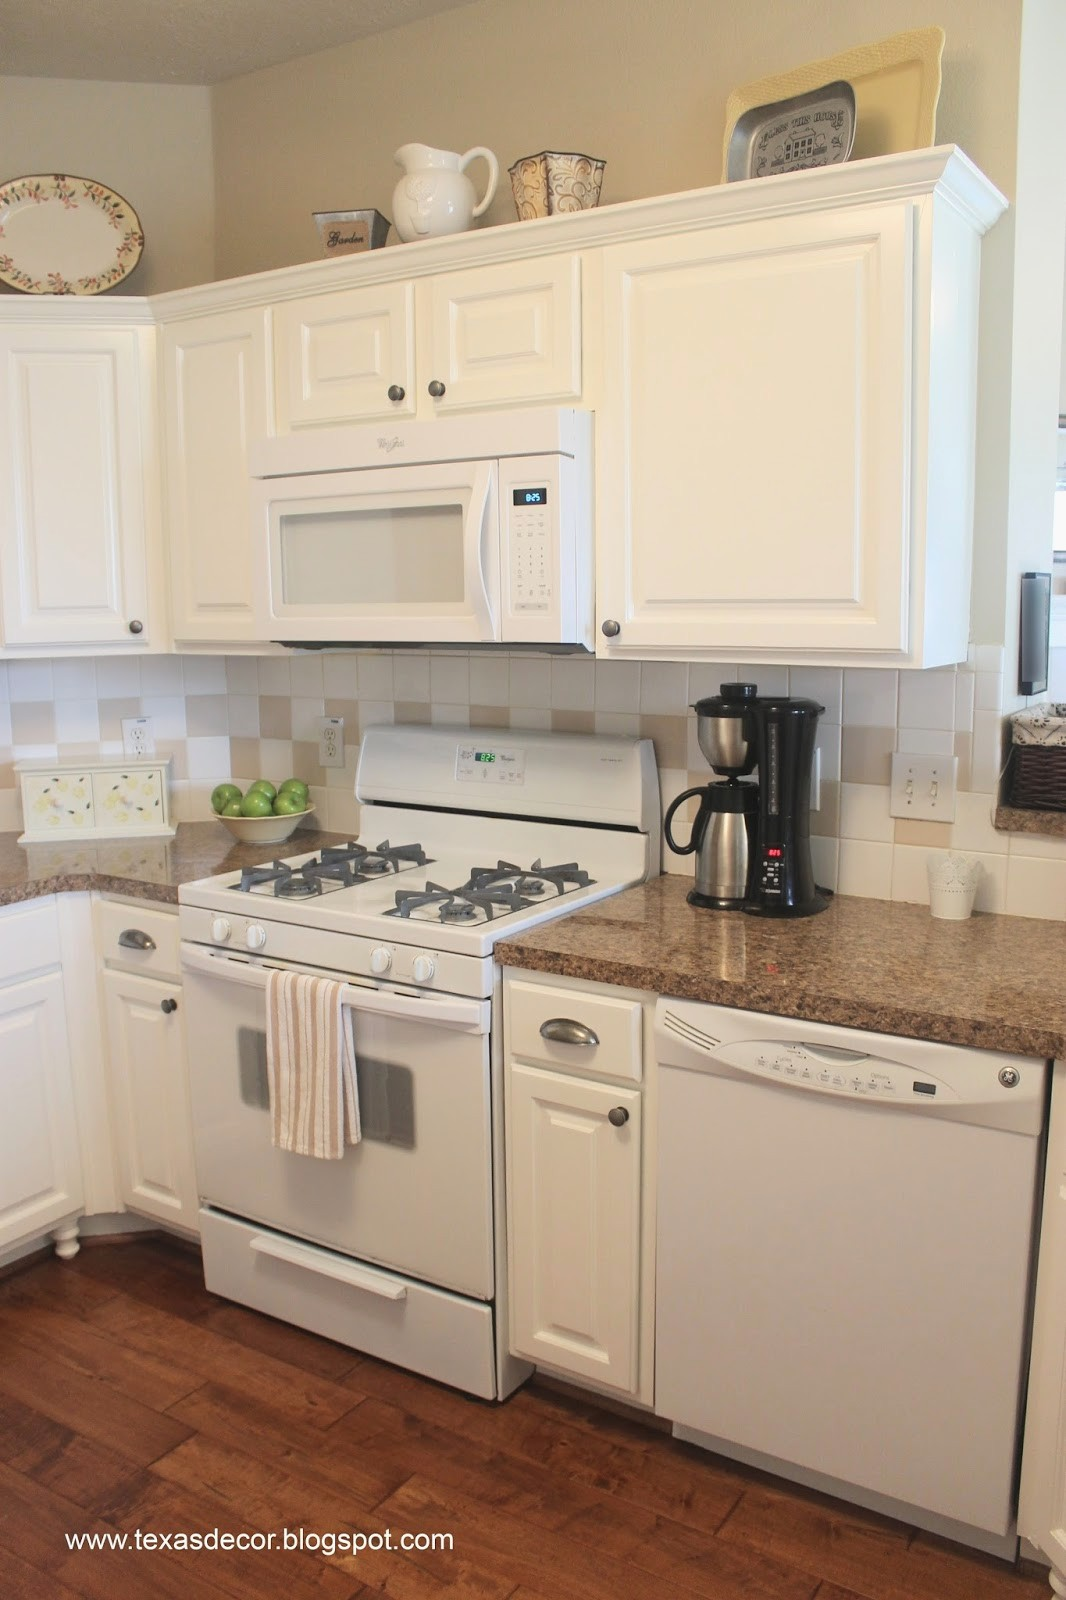 white kitchen cabinets with white appliances off white kitchen cabinet paint colors best of painted kitchen HMKVPHP